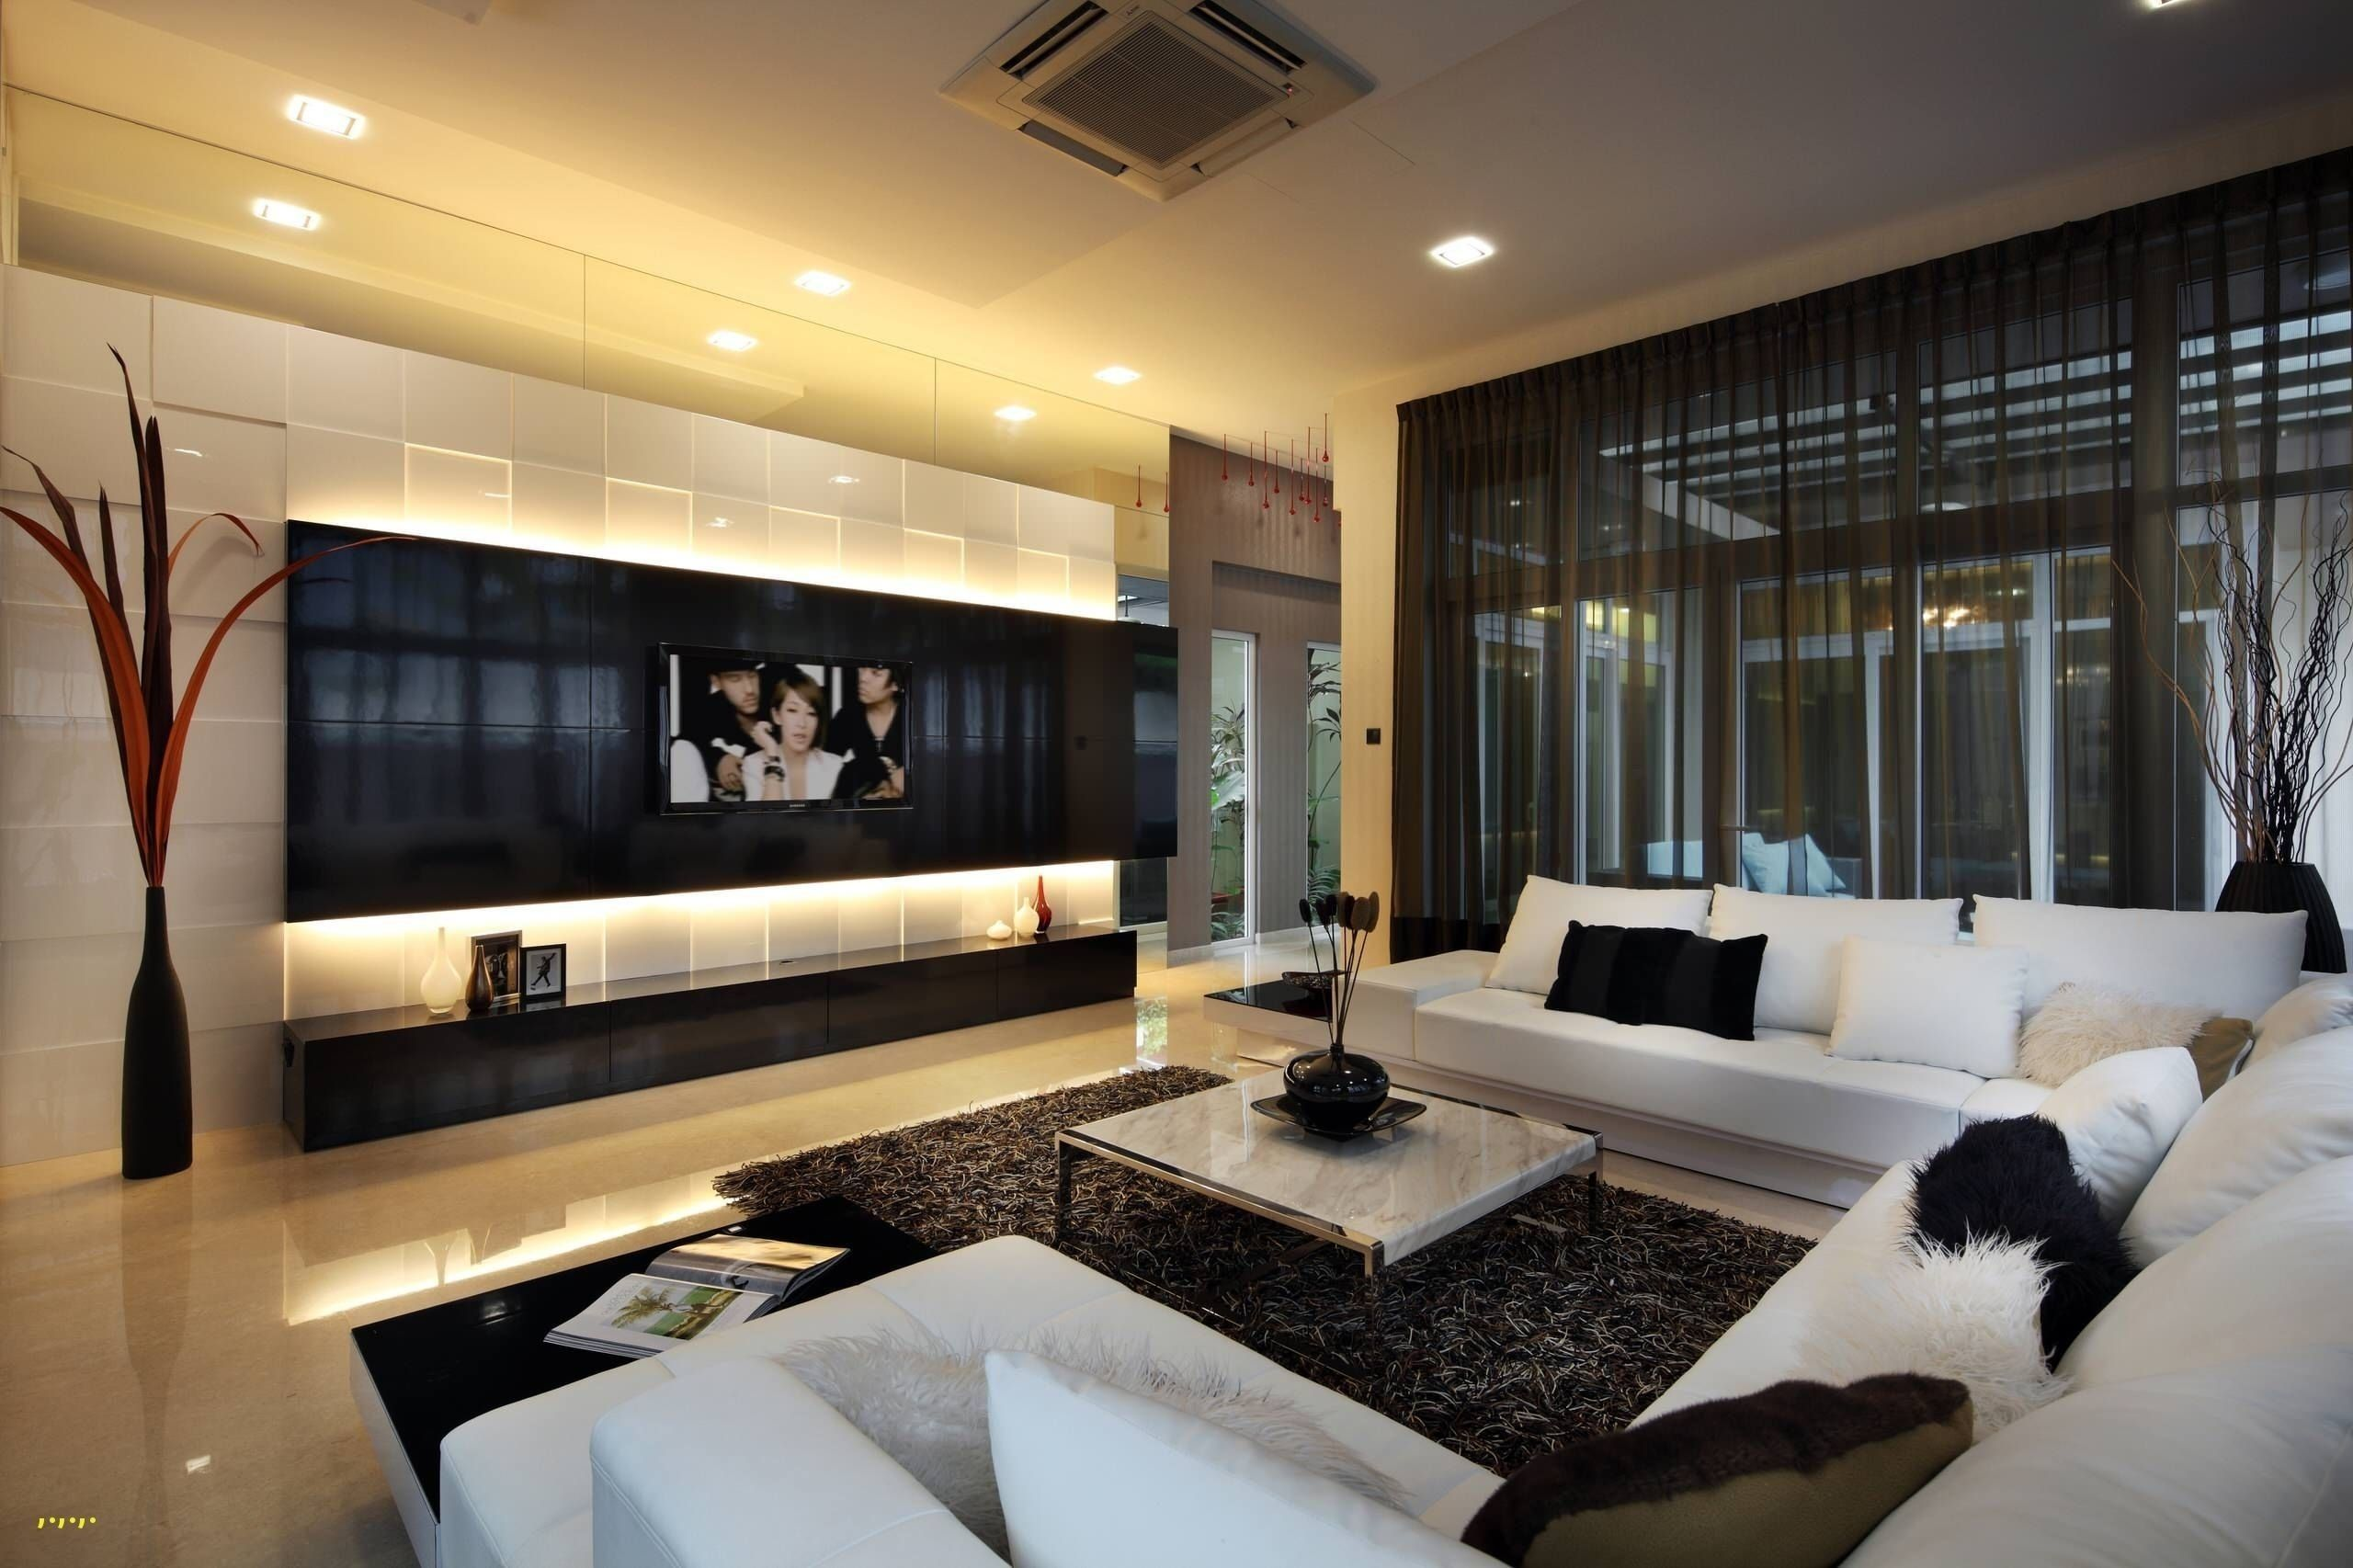 Modern Mansion Living Room With Tv Home Ideas 2018 Living Room Design Modern Living Room Interior Interior Design Living Room